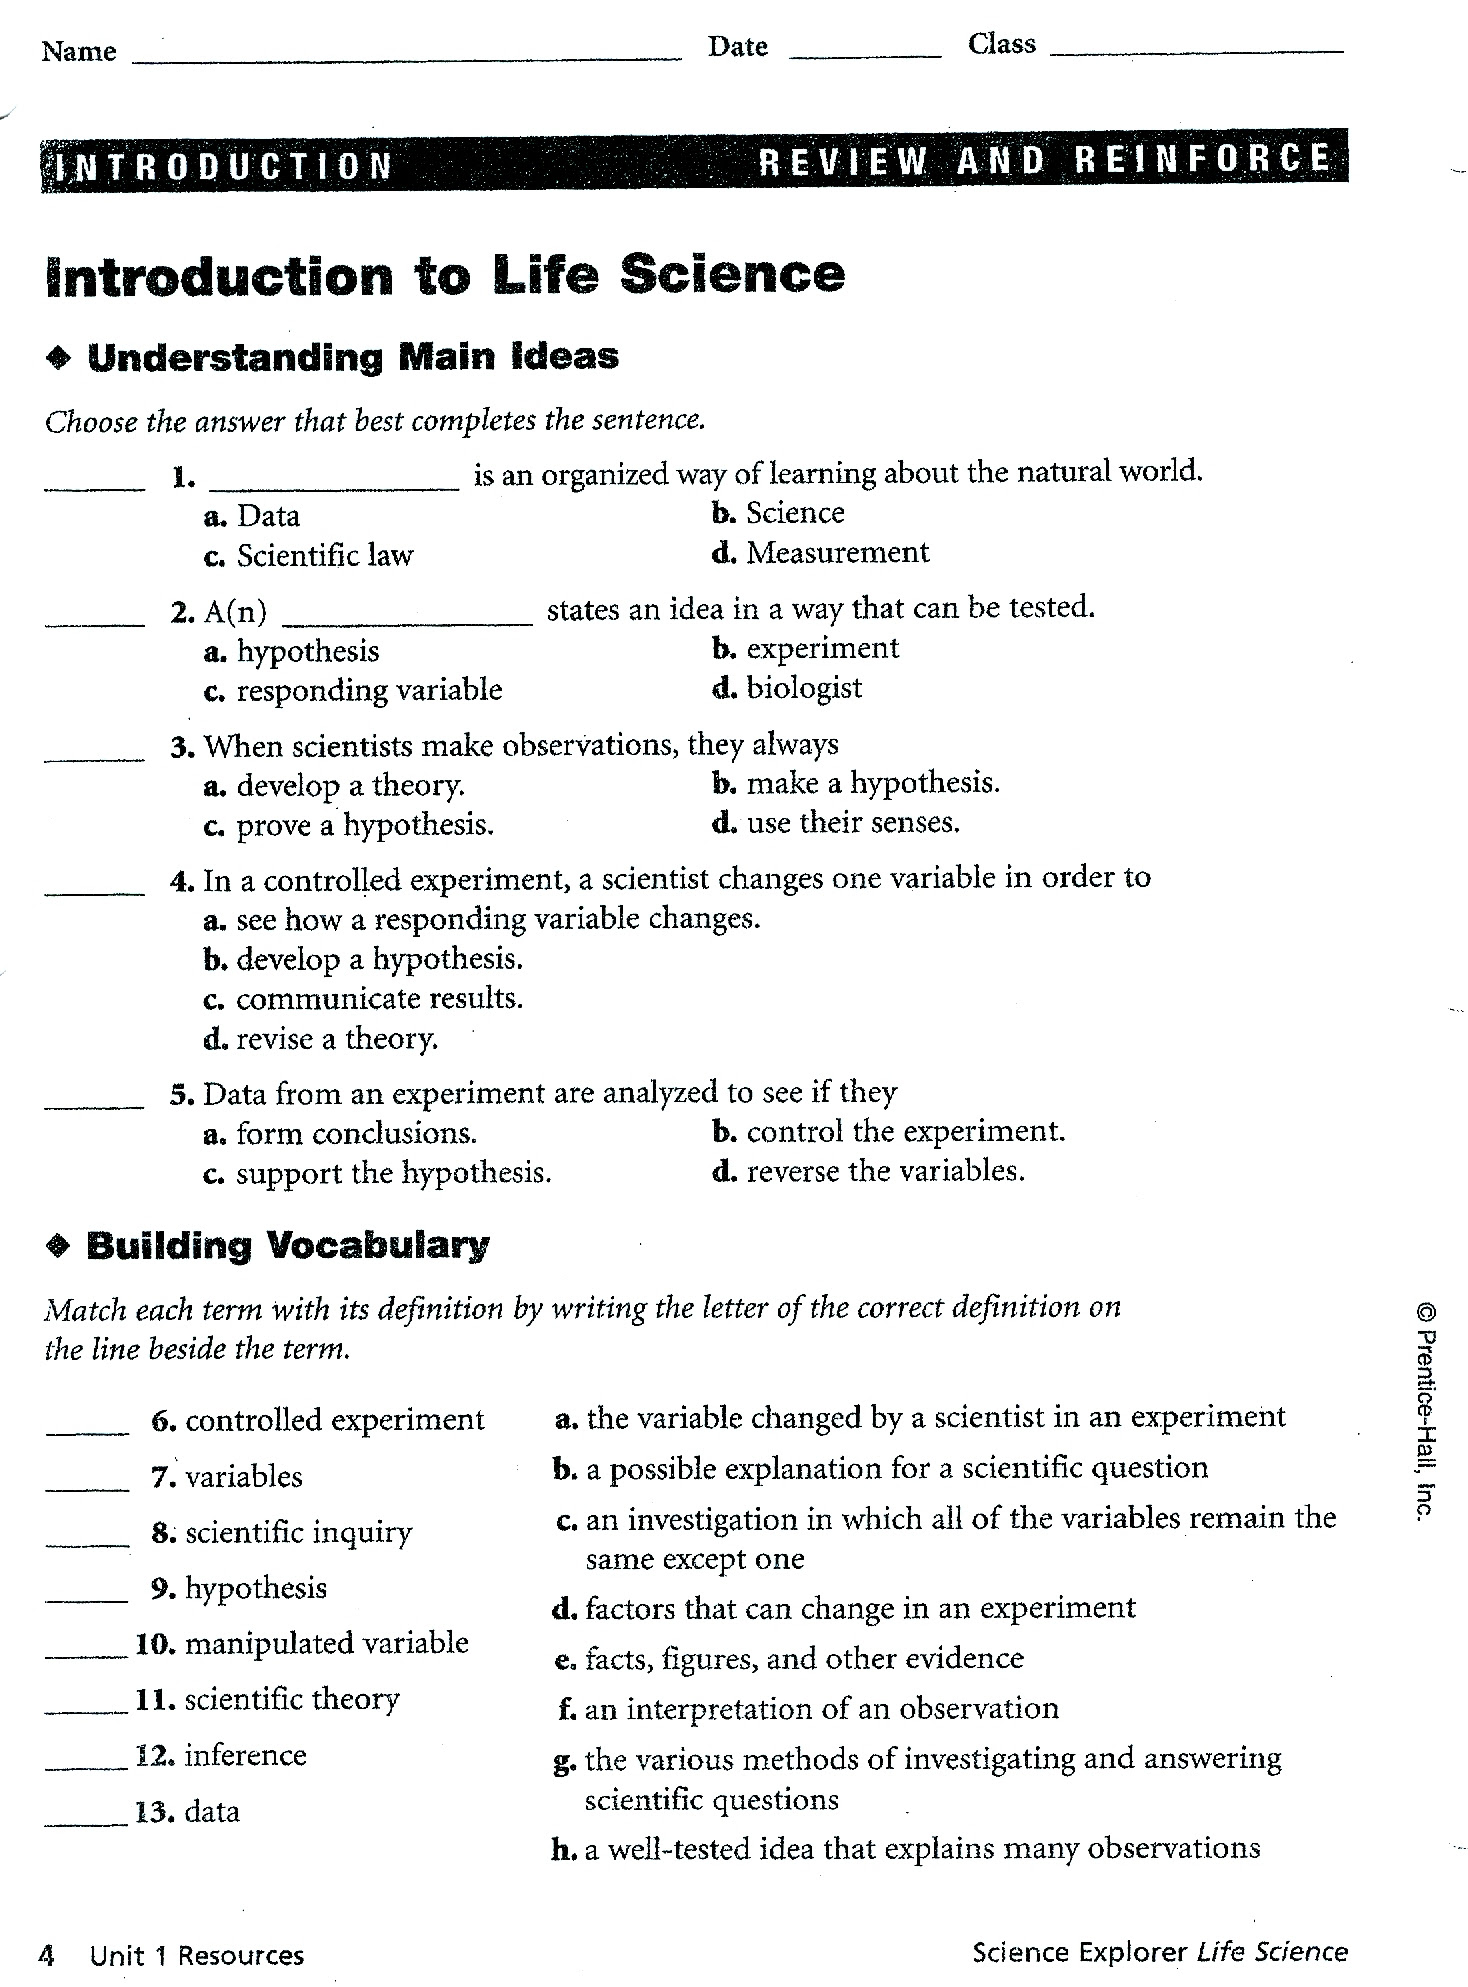 32 Introduction To Life Science Worksheet Answers - Free ...